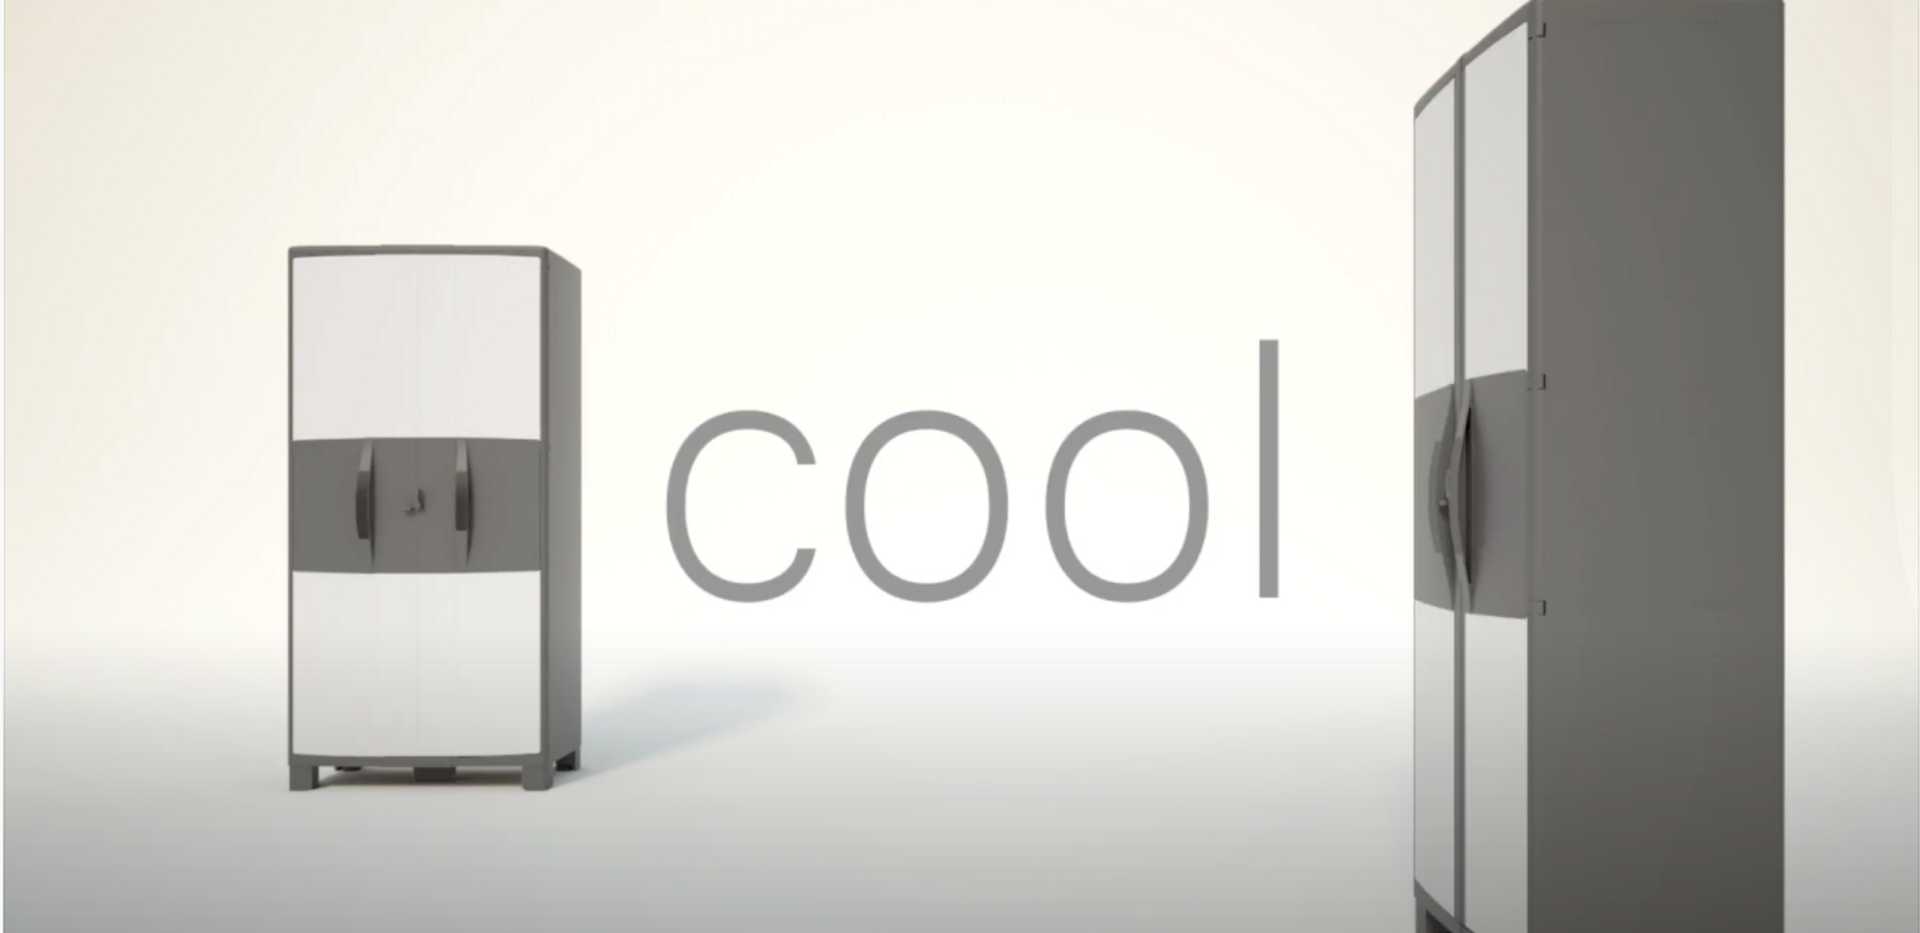 Terry Storage - Cool